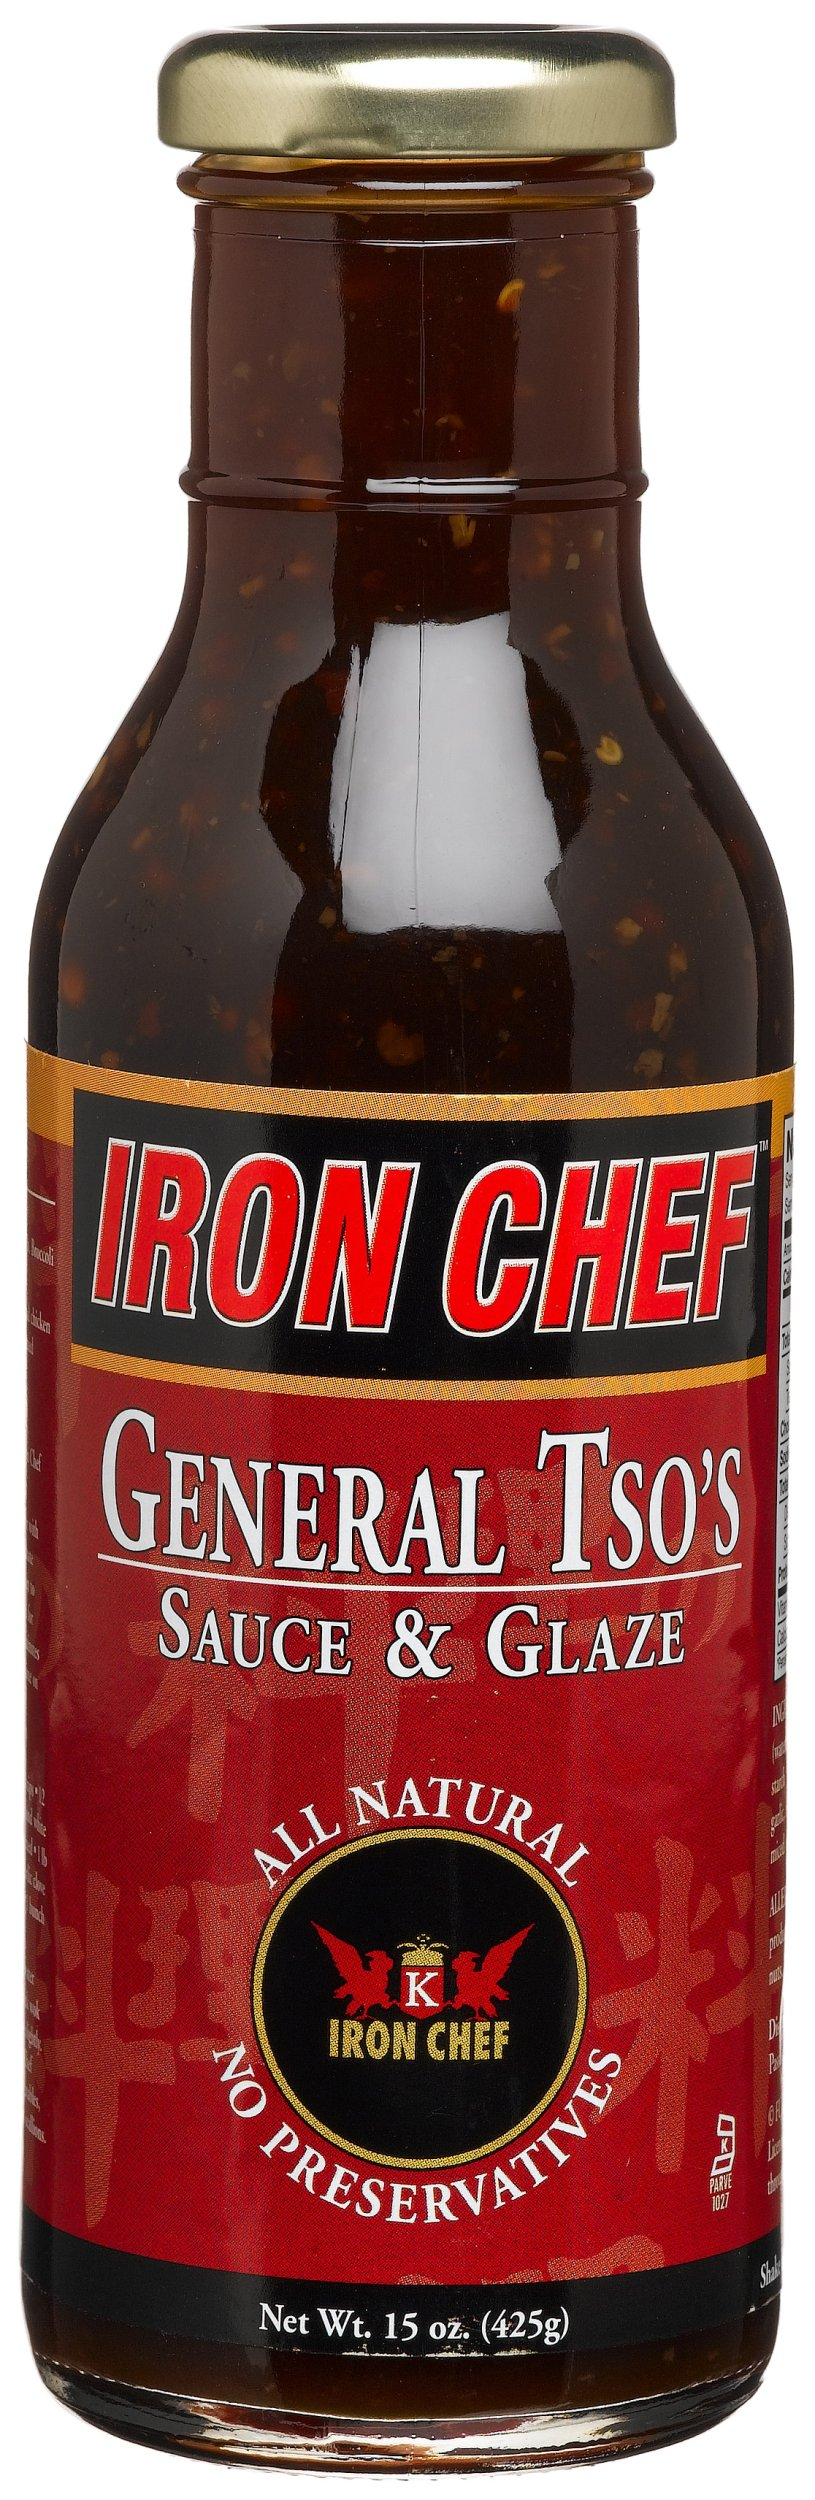 IRON CHEF General Tso's Sauce & Glaze, All Natural, Kosher, 15-Ounce Glass Bottles (Pack of 3)